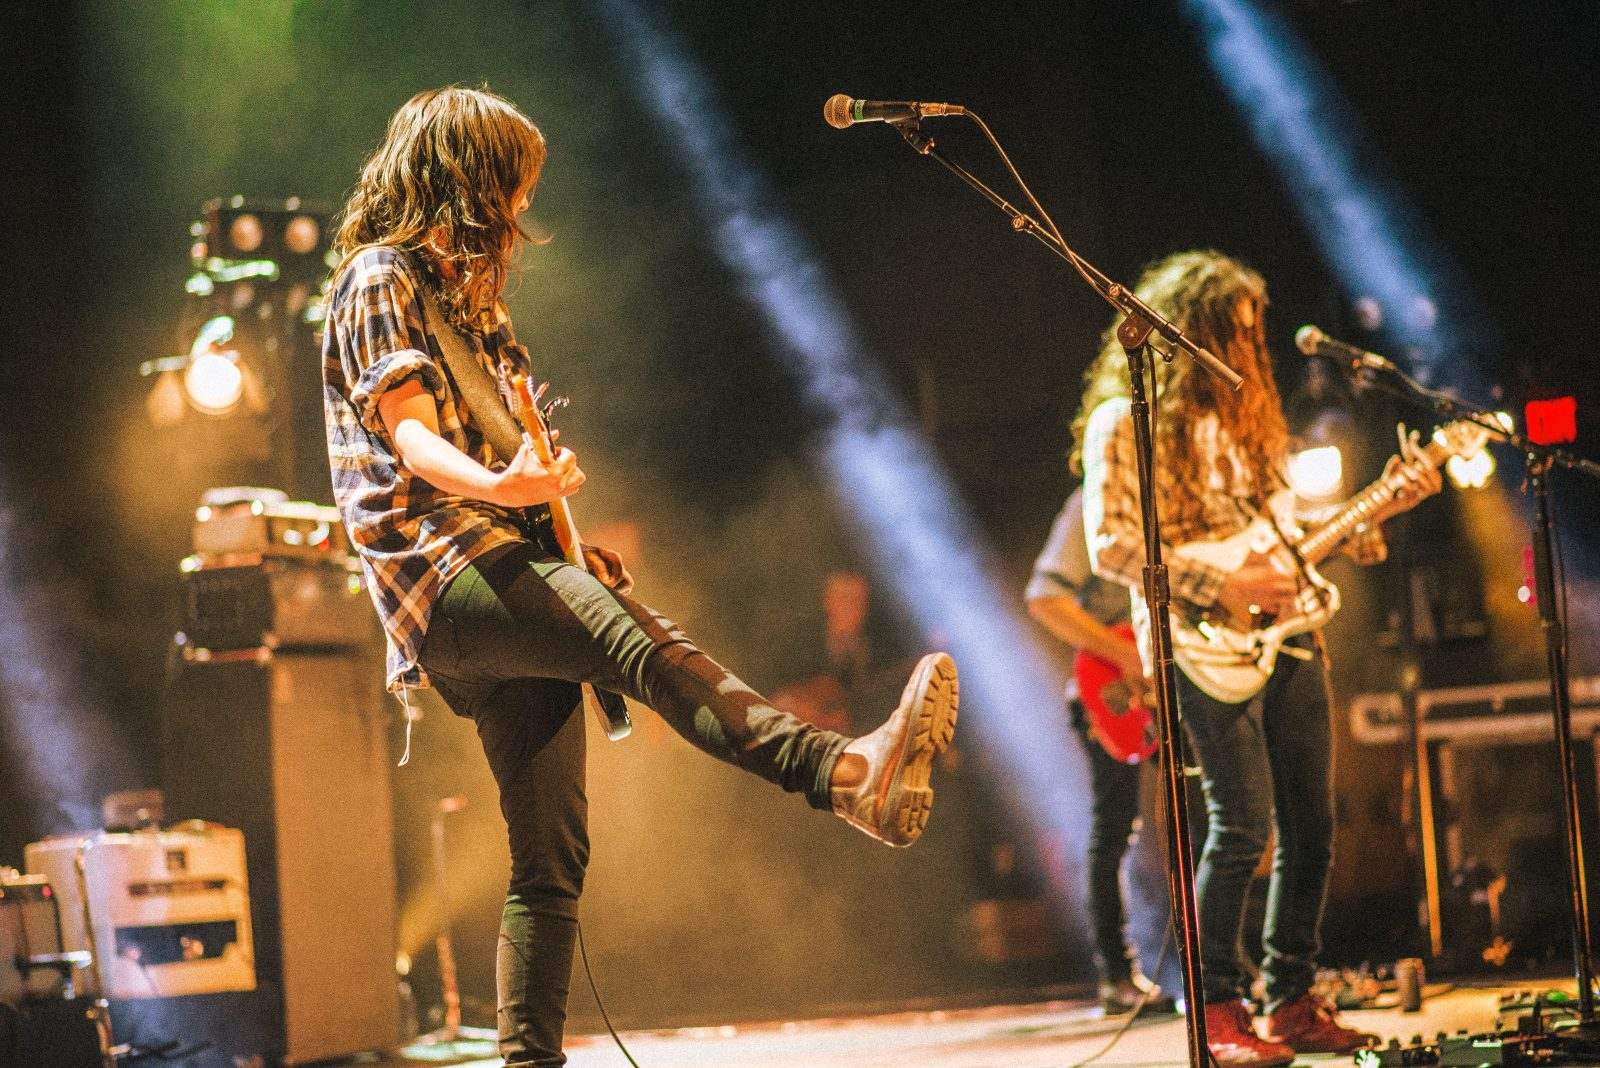 an evening with: Courtney Barnett and Kurt Vile